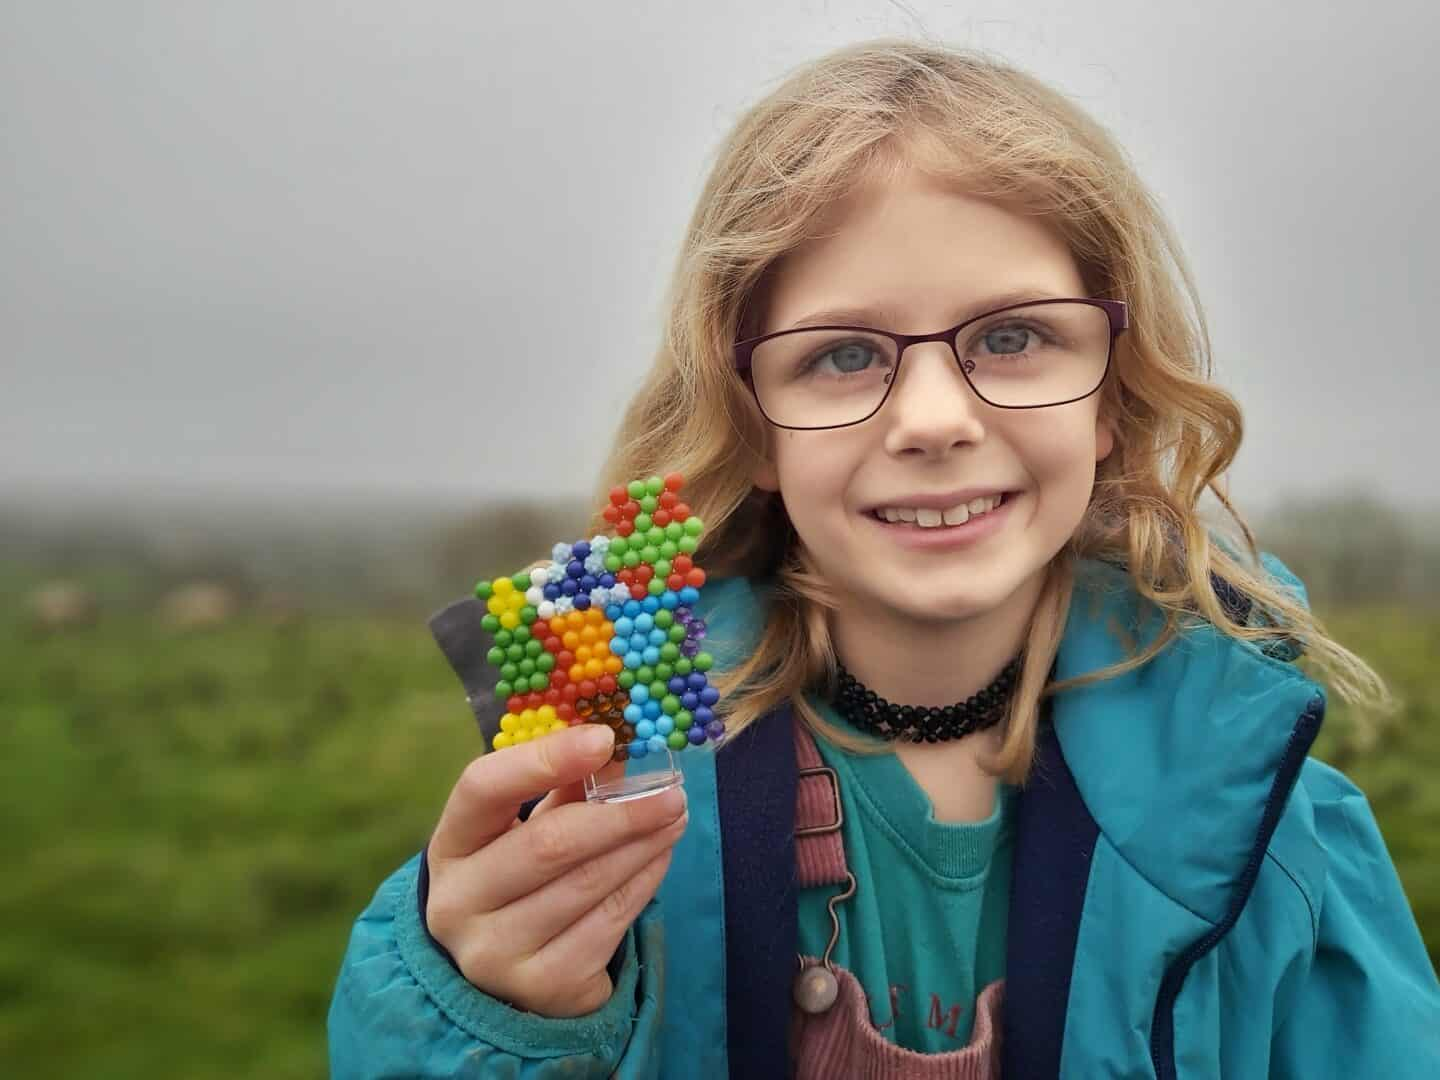 Win an Aquabeads bundle in time for Christmas [AD]